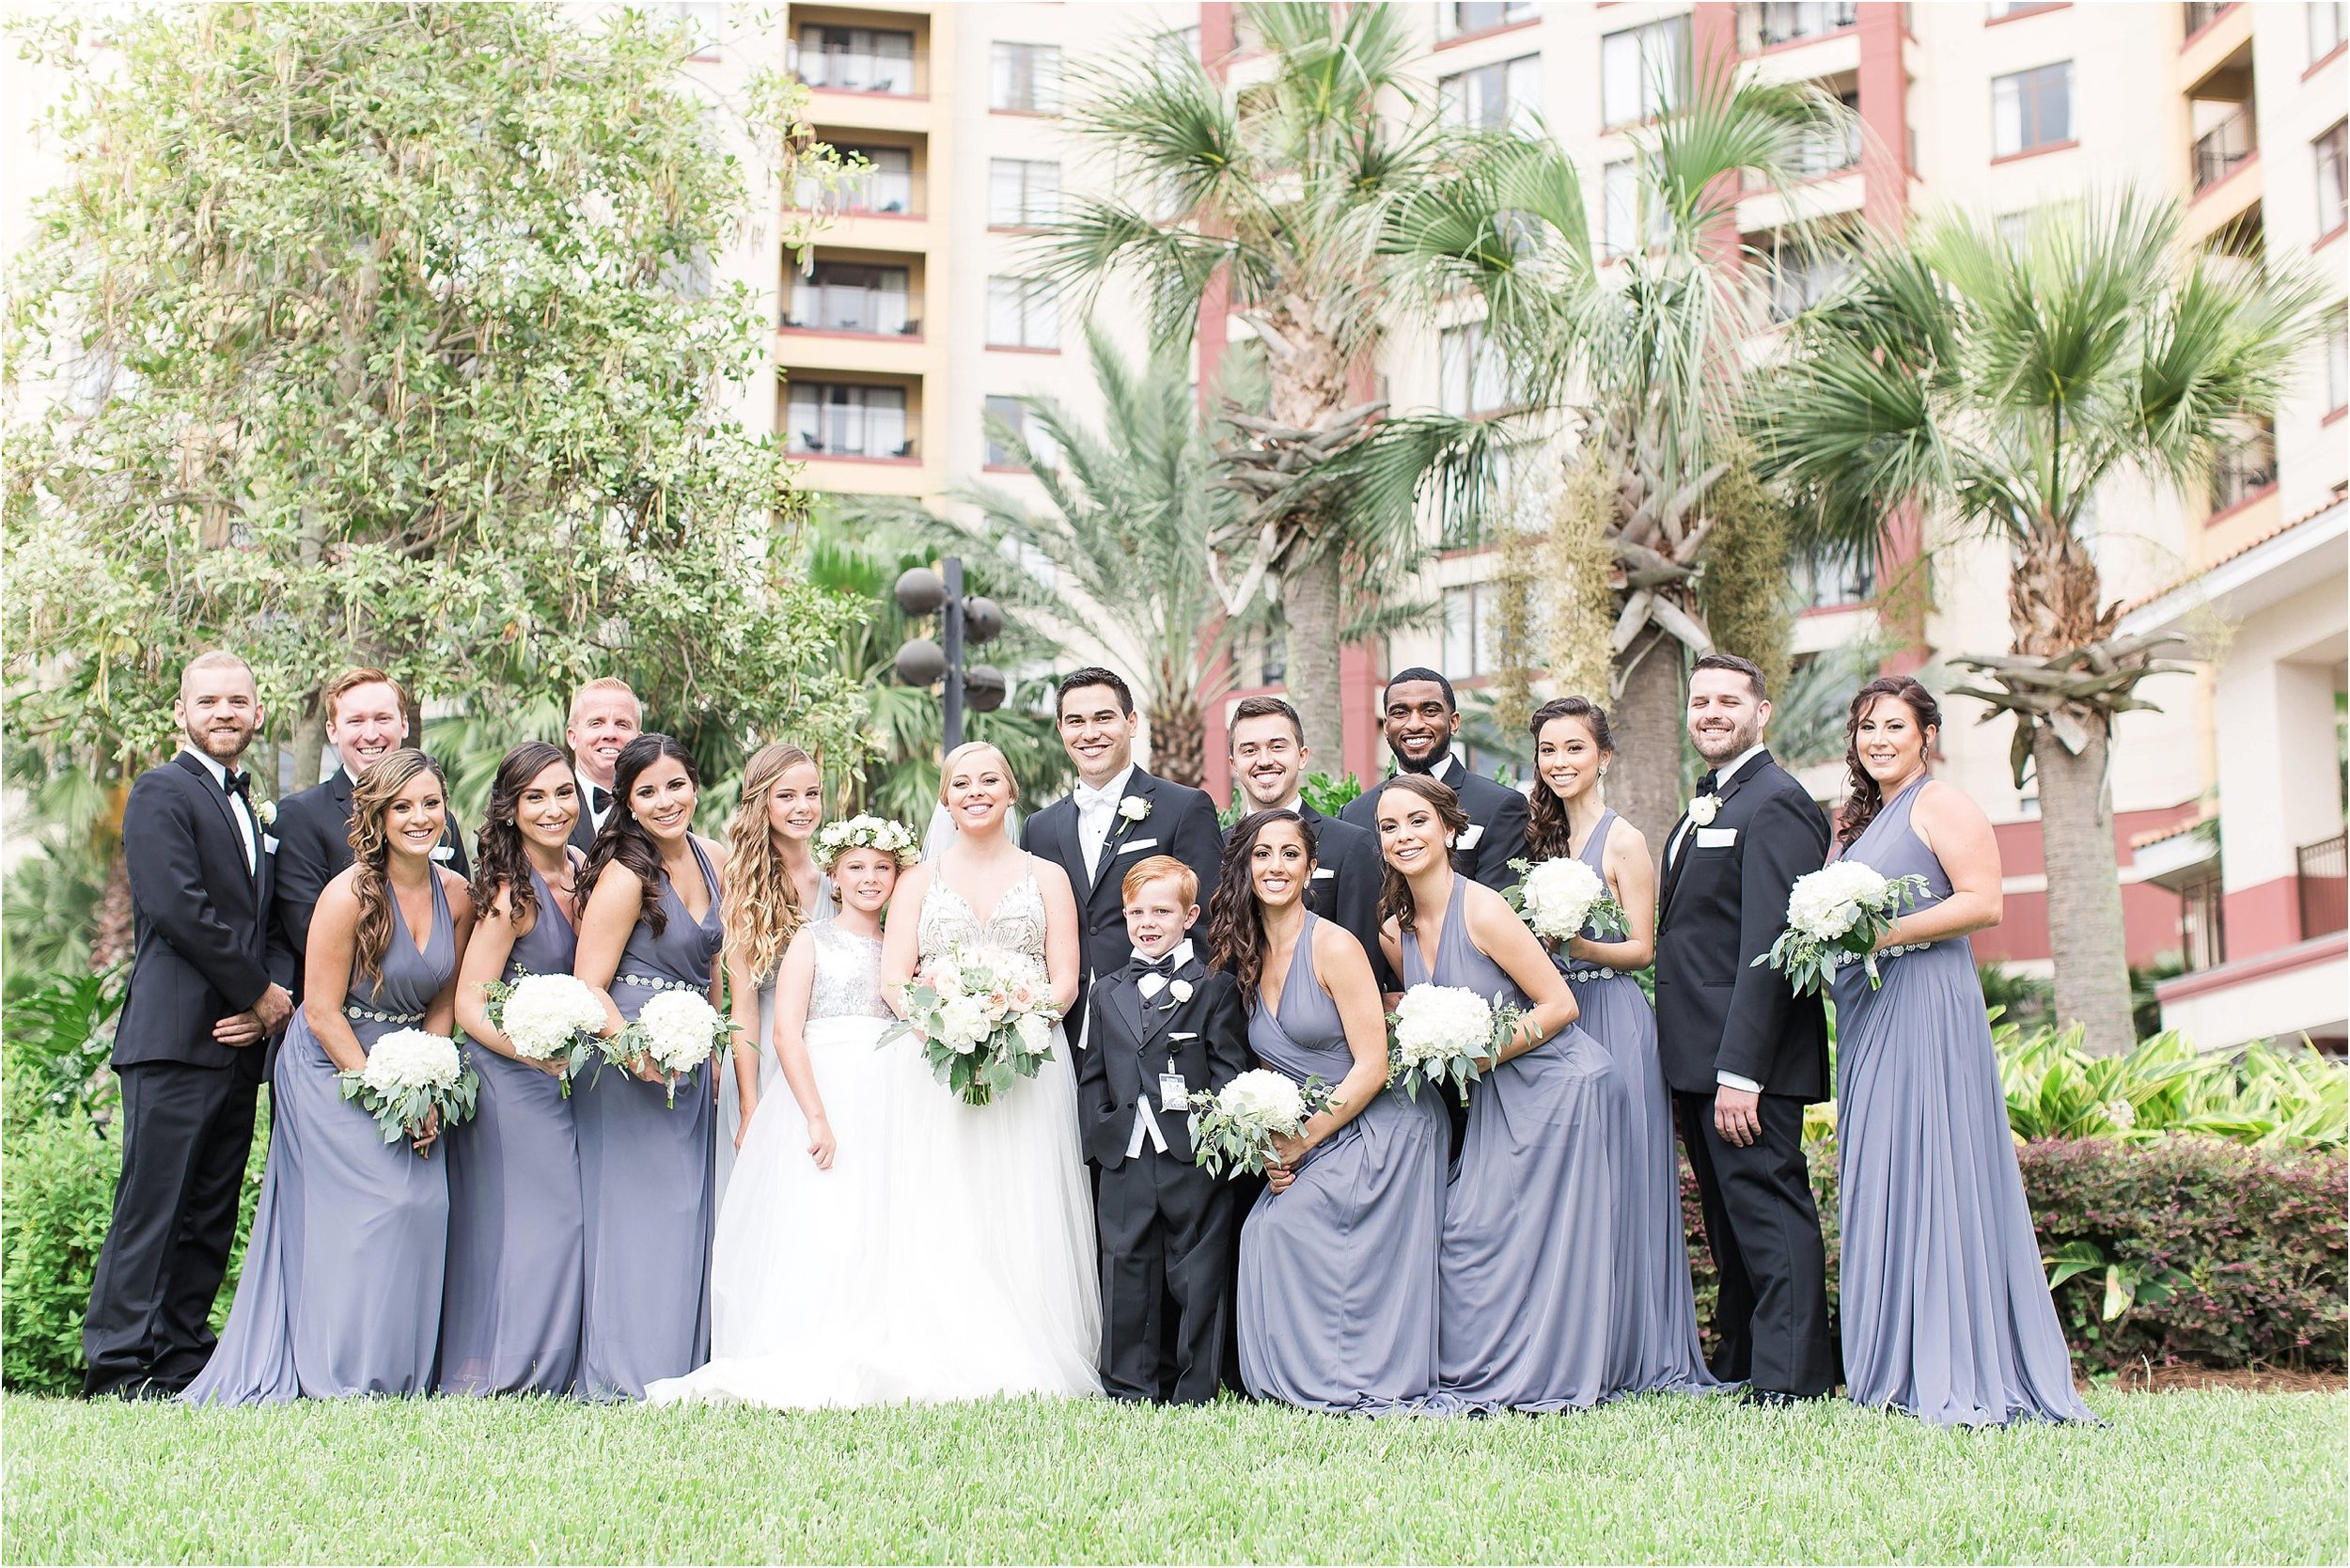 Grey white and black bridal party at Wyndham Grand at Bonnet Creek wedding by PSJ Photography